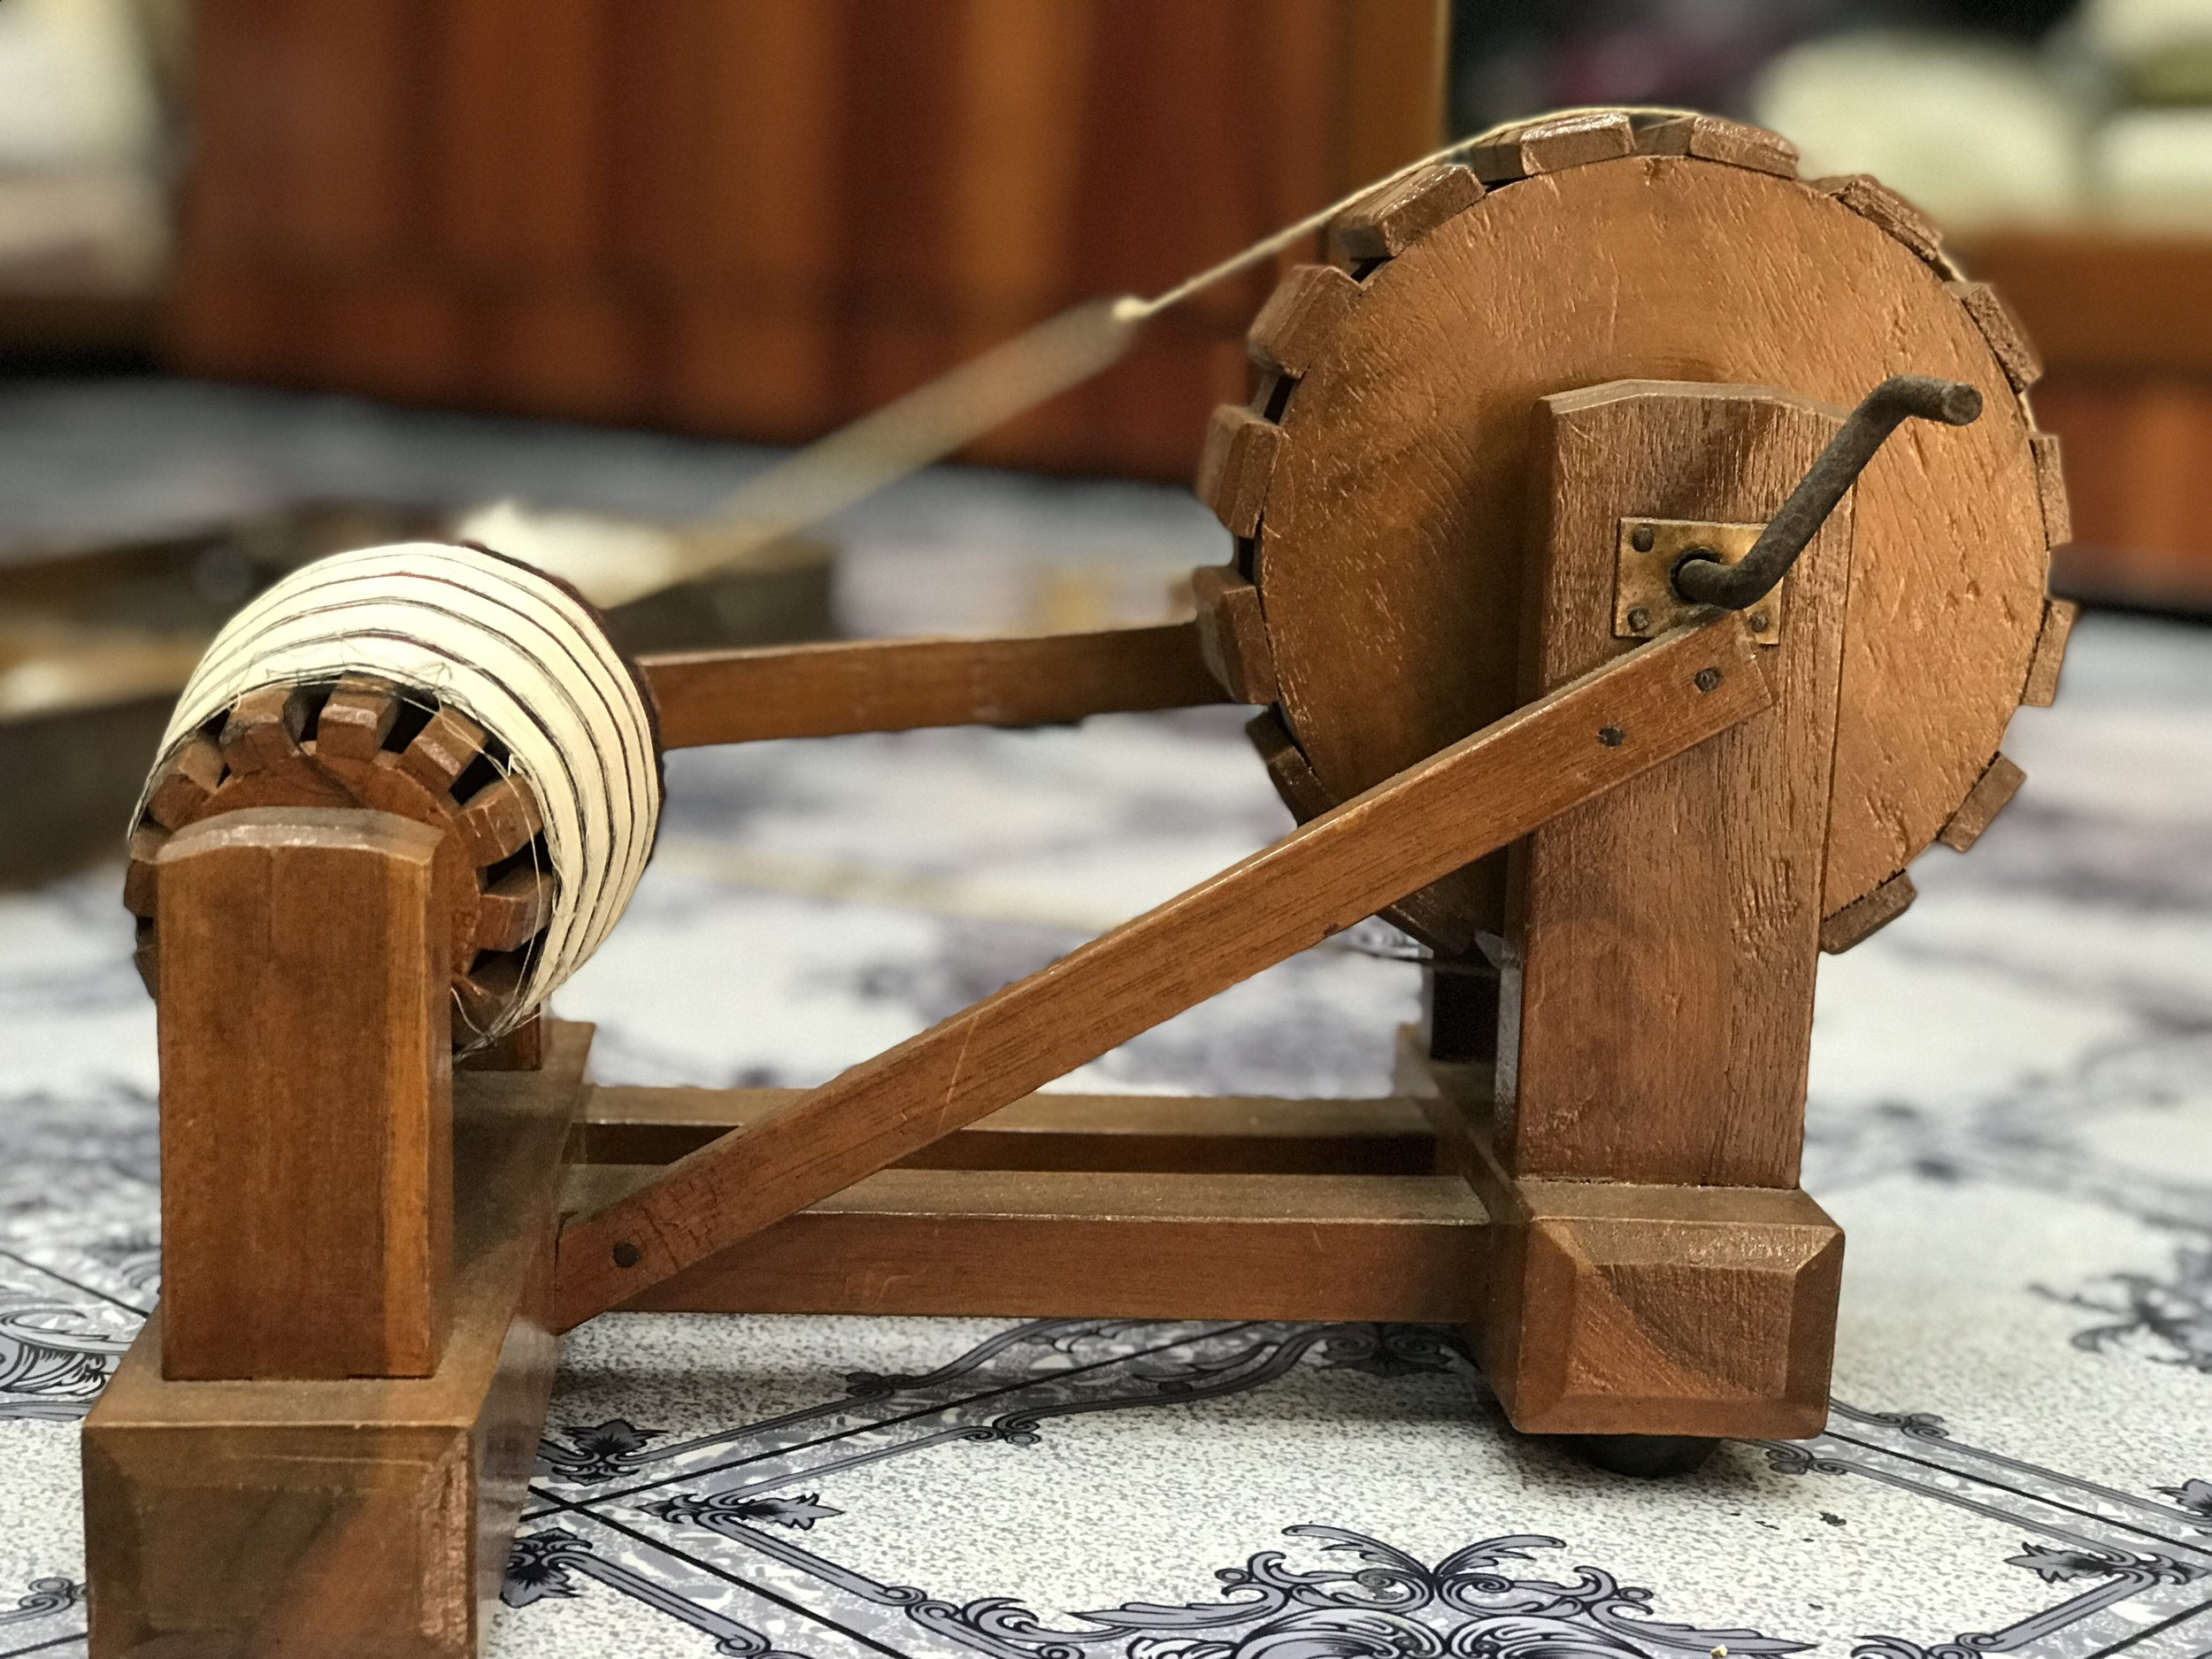 Copy of A miniature spinning wheel